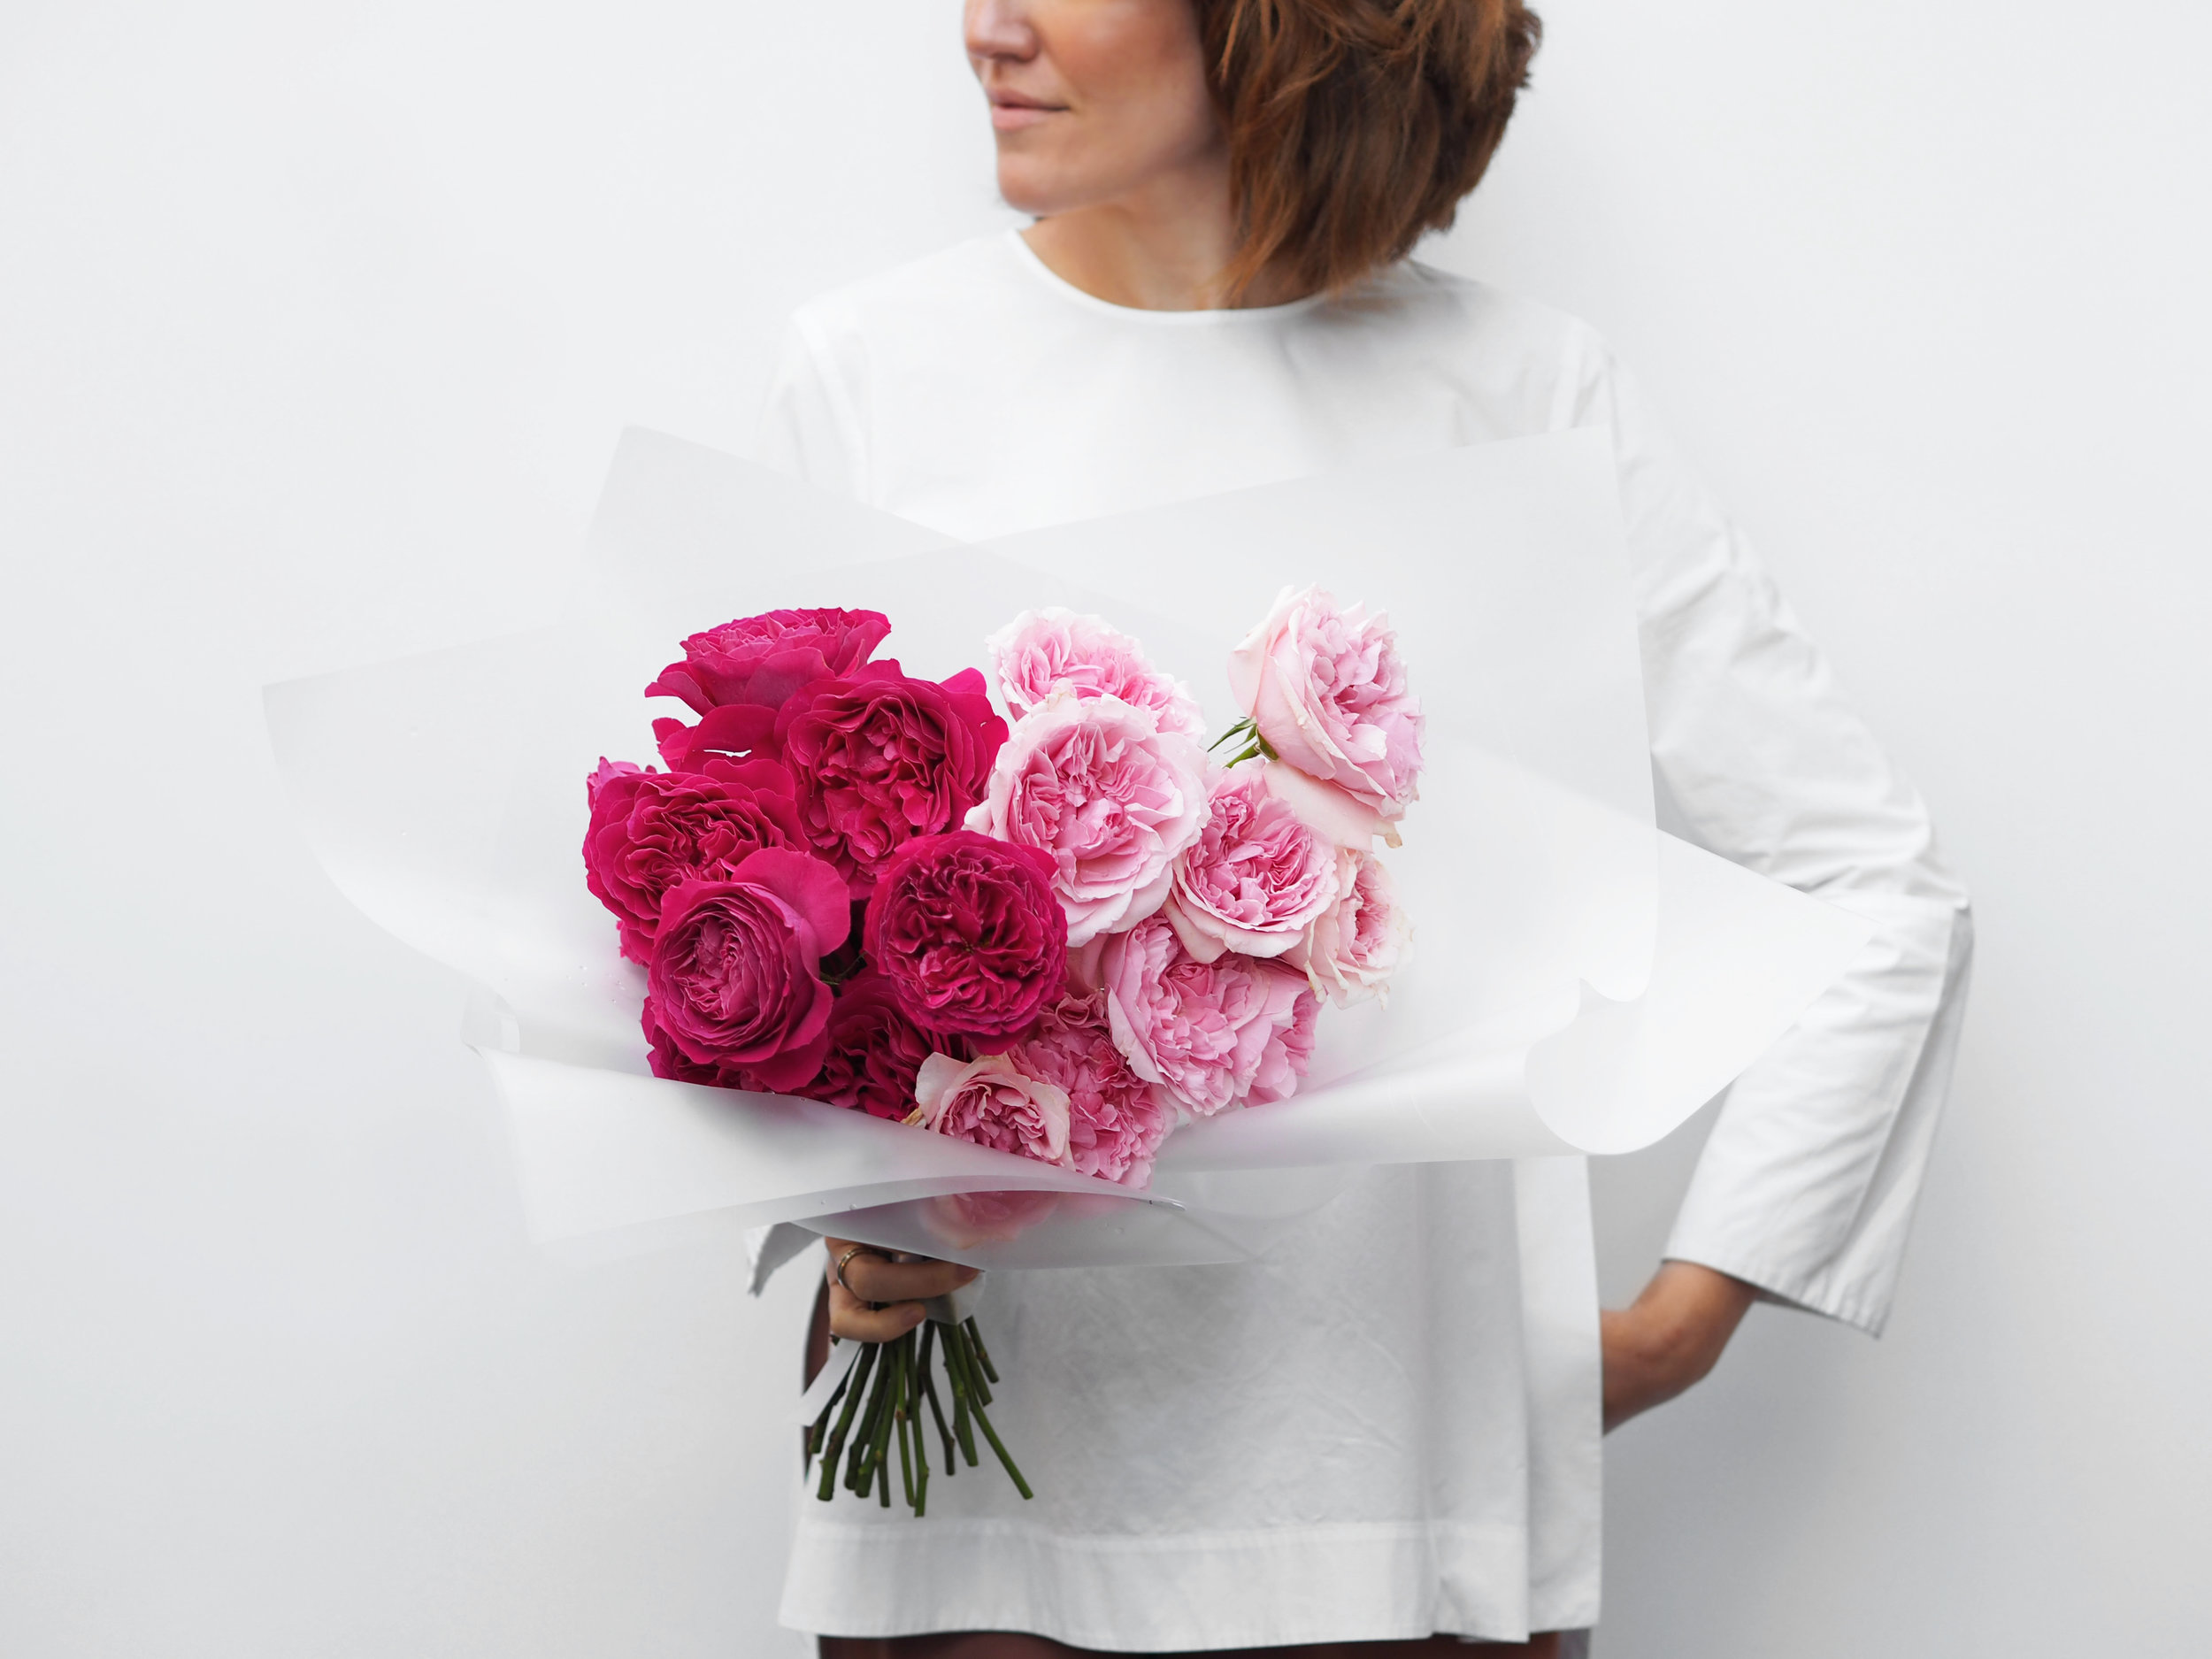 No. 5 - A mono bouquet of fragrant David Austin roses. These large peony-like roses are known for their fluffy lushness, size and intricate colour.